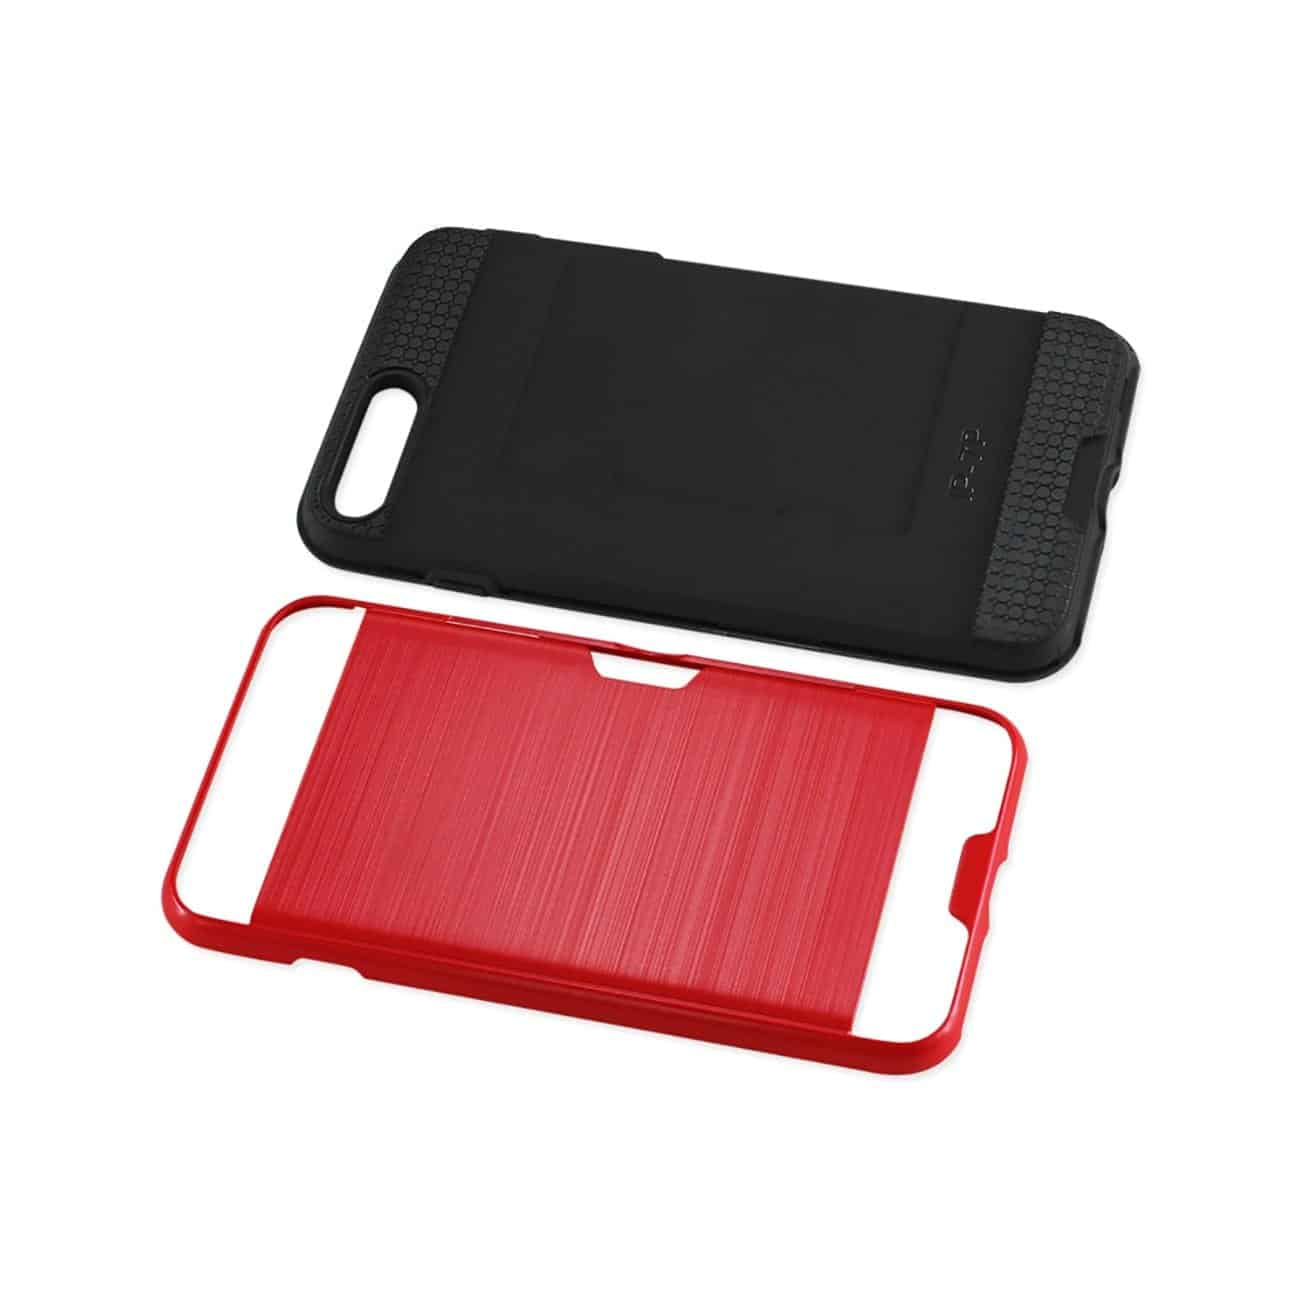 IPHONE 7 PLUS SLIM ARMOR HYBRID CASE WITH CARD HOLDER IN RED